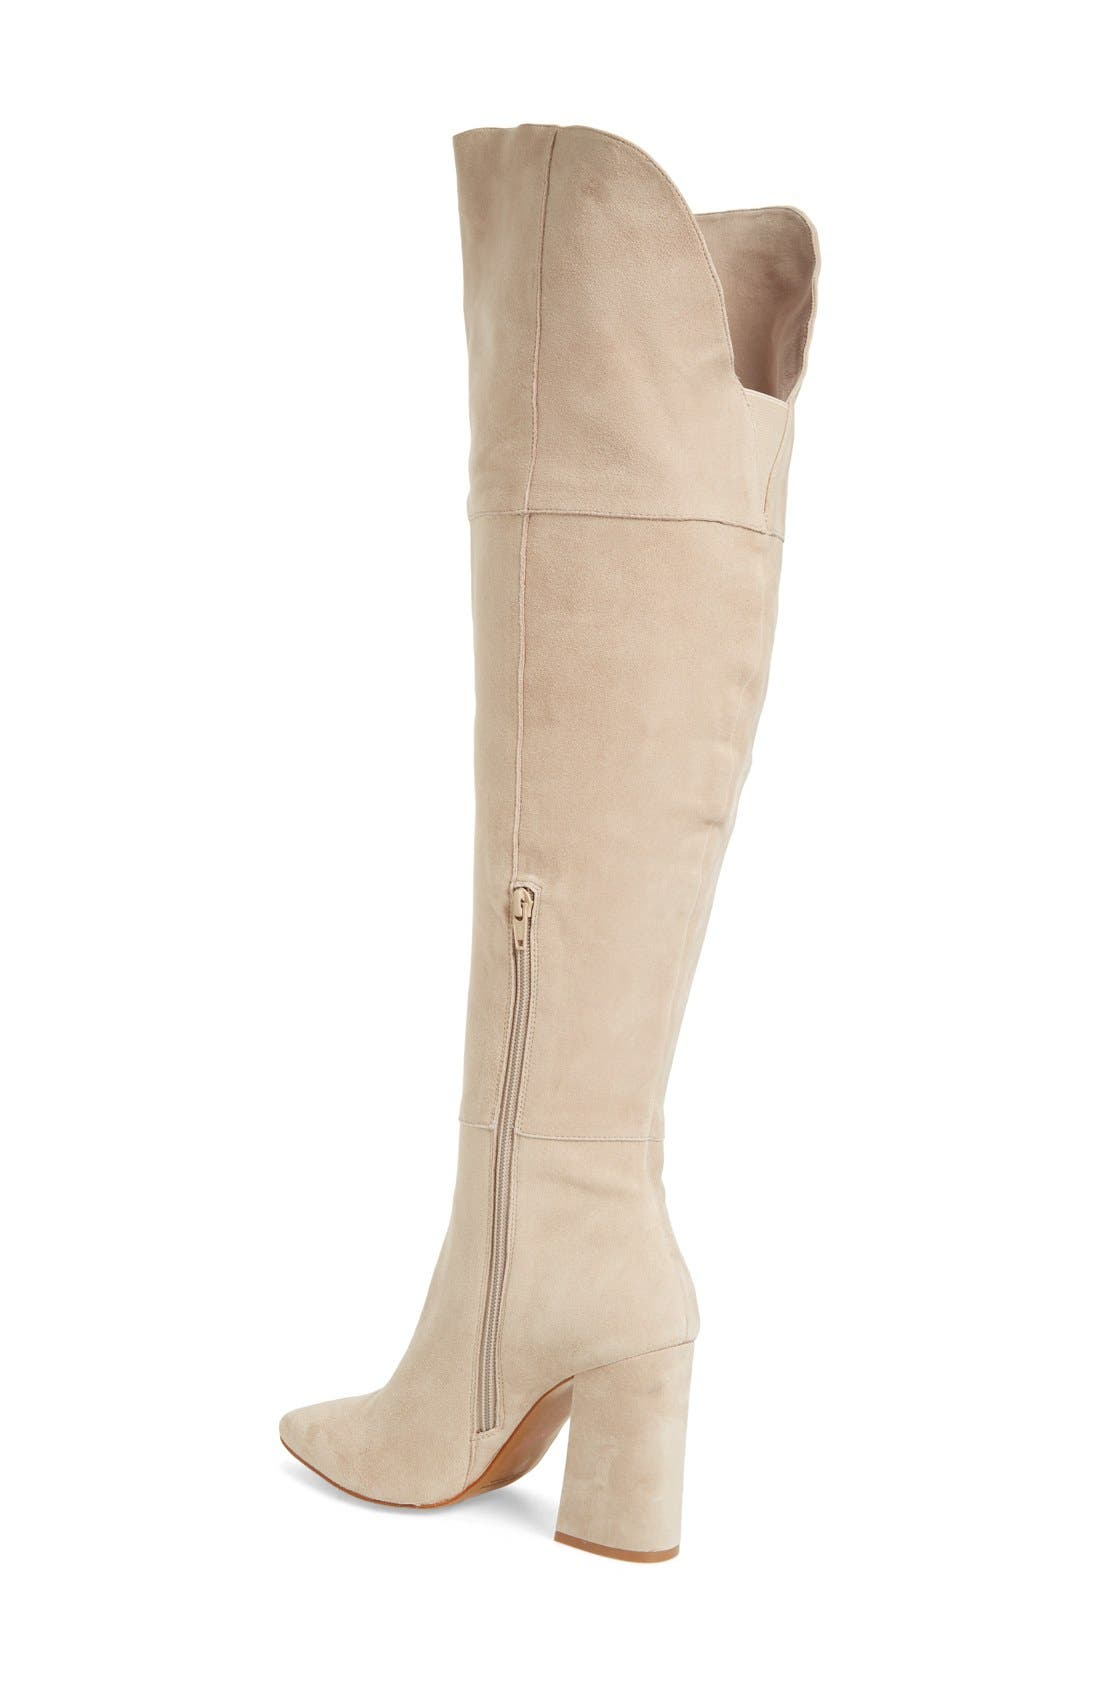 Alternate Image 2  - Kristin Cavallari 'Saffron' Over the Knee Boot (Women)